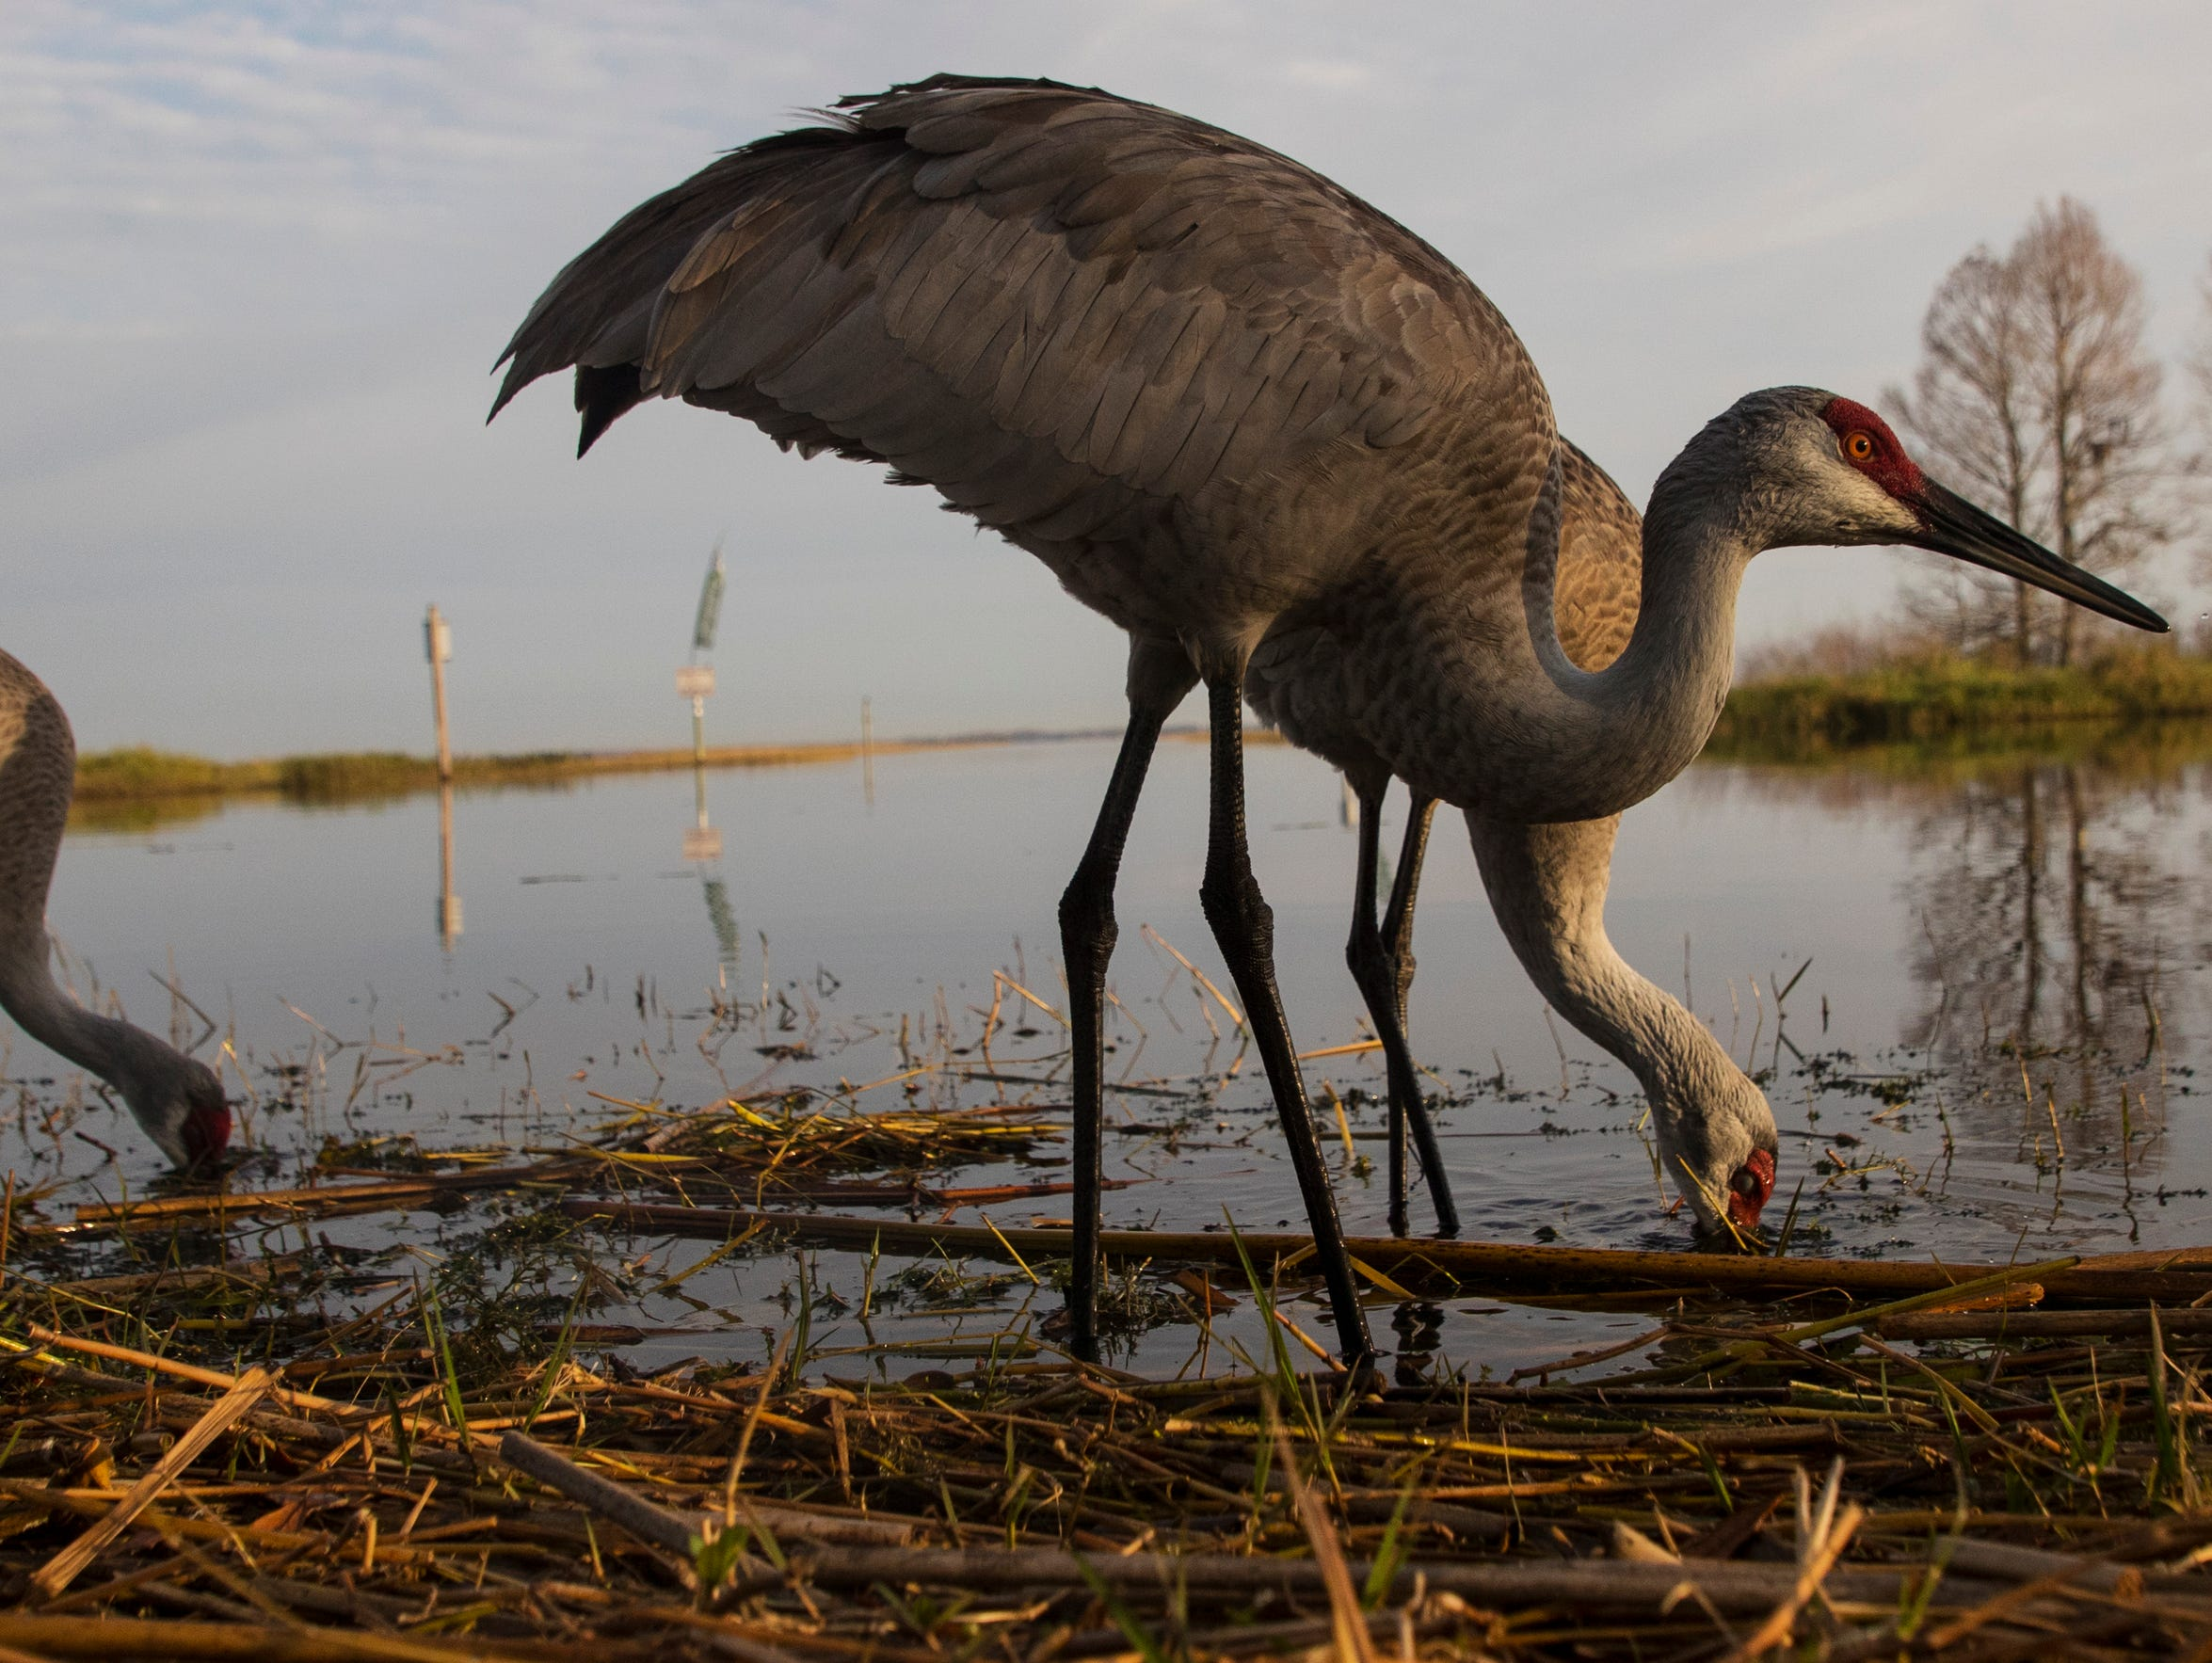 Sandhill cranes feed on the south end of Lake Tohopekaliga